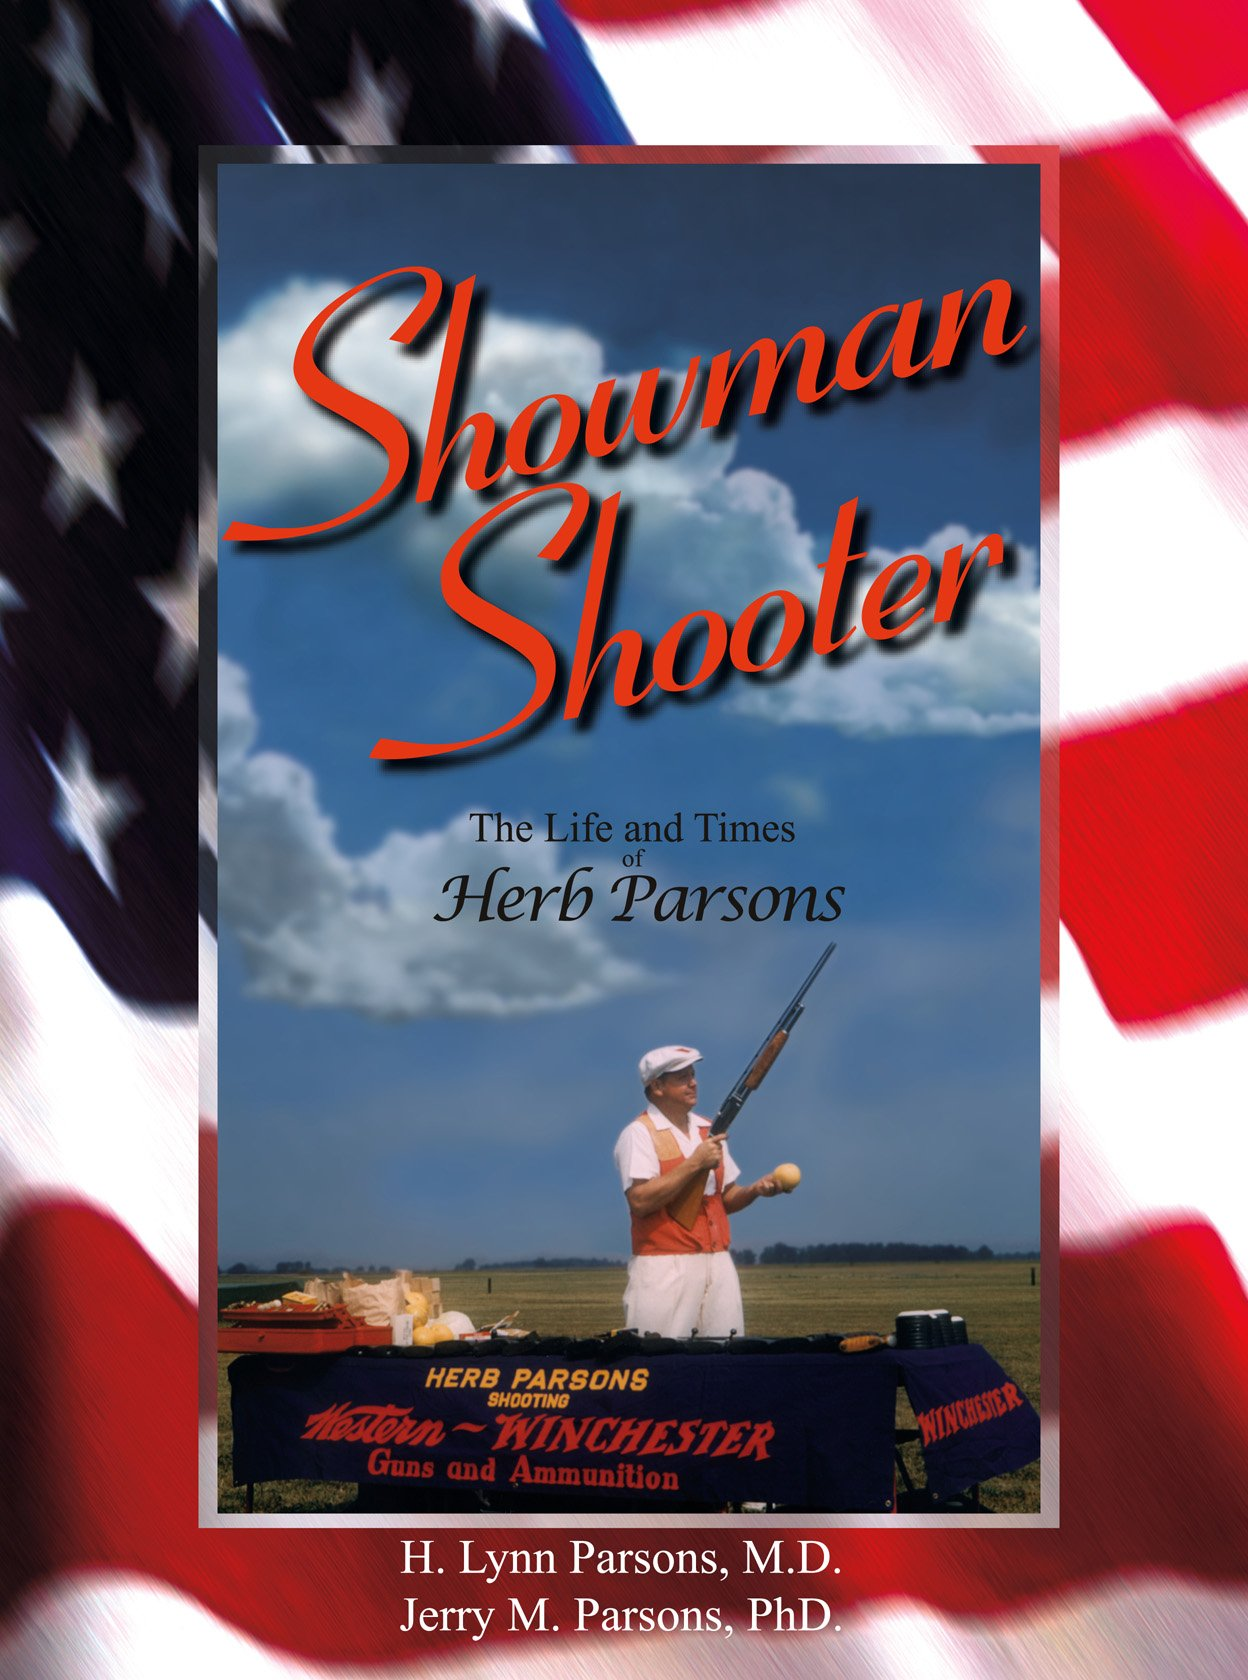 Download Showman Shooter - The Life and Times of Herb Parsons ebook